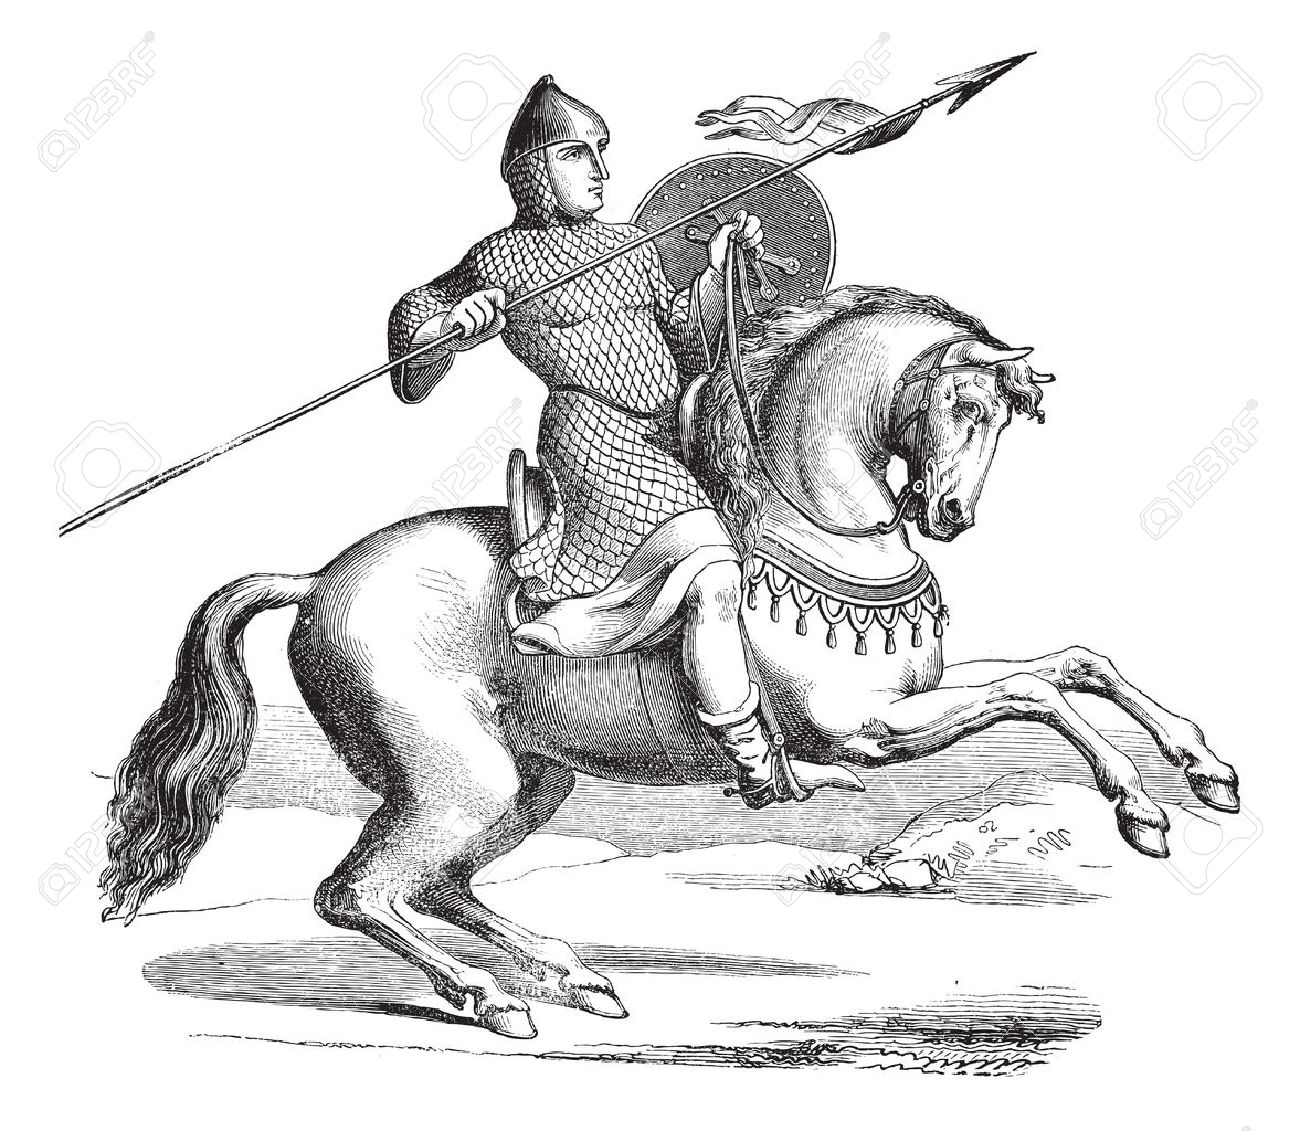 Old Engraved Illustration Of Knight On A Horse Wearing Hauberk Royalty Free Cliparts Vectors And Stock Illustration Image 13771566